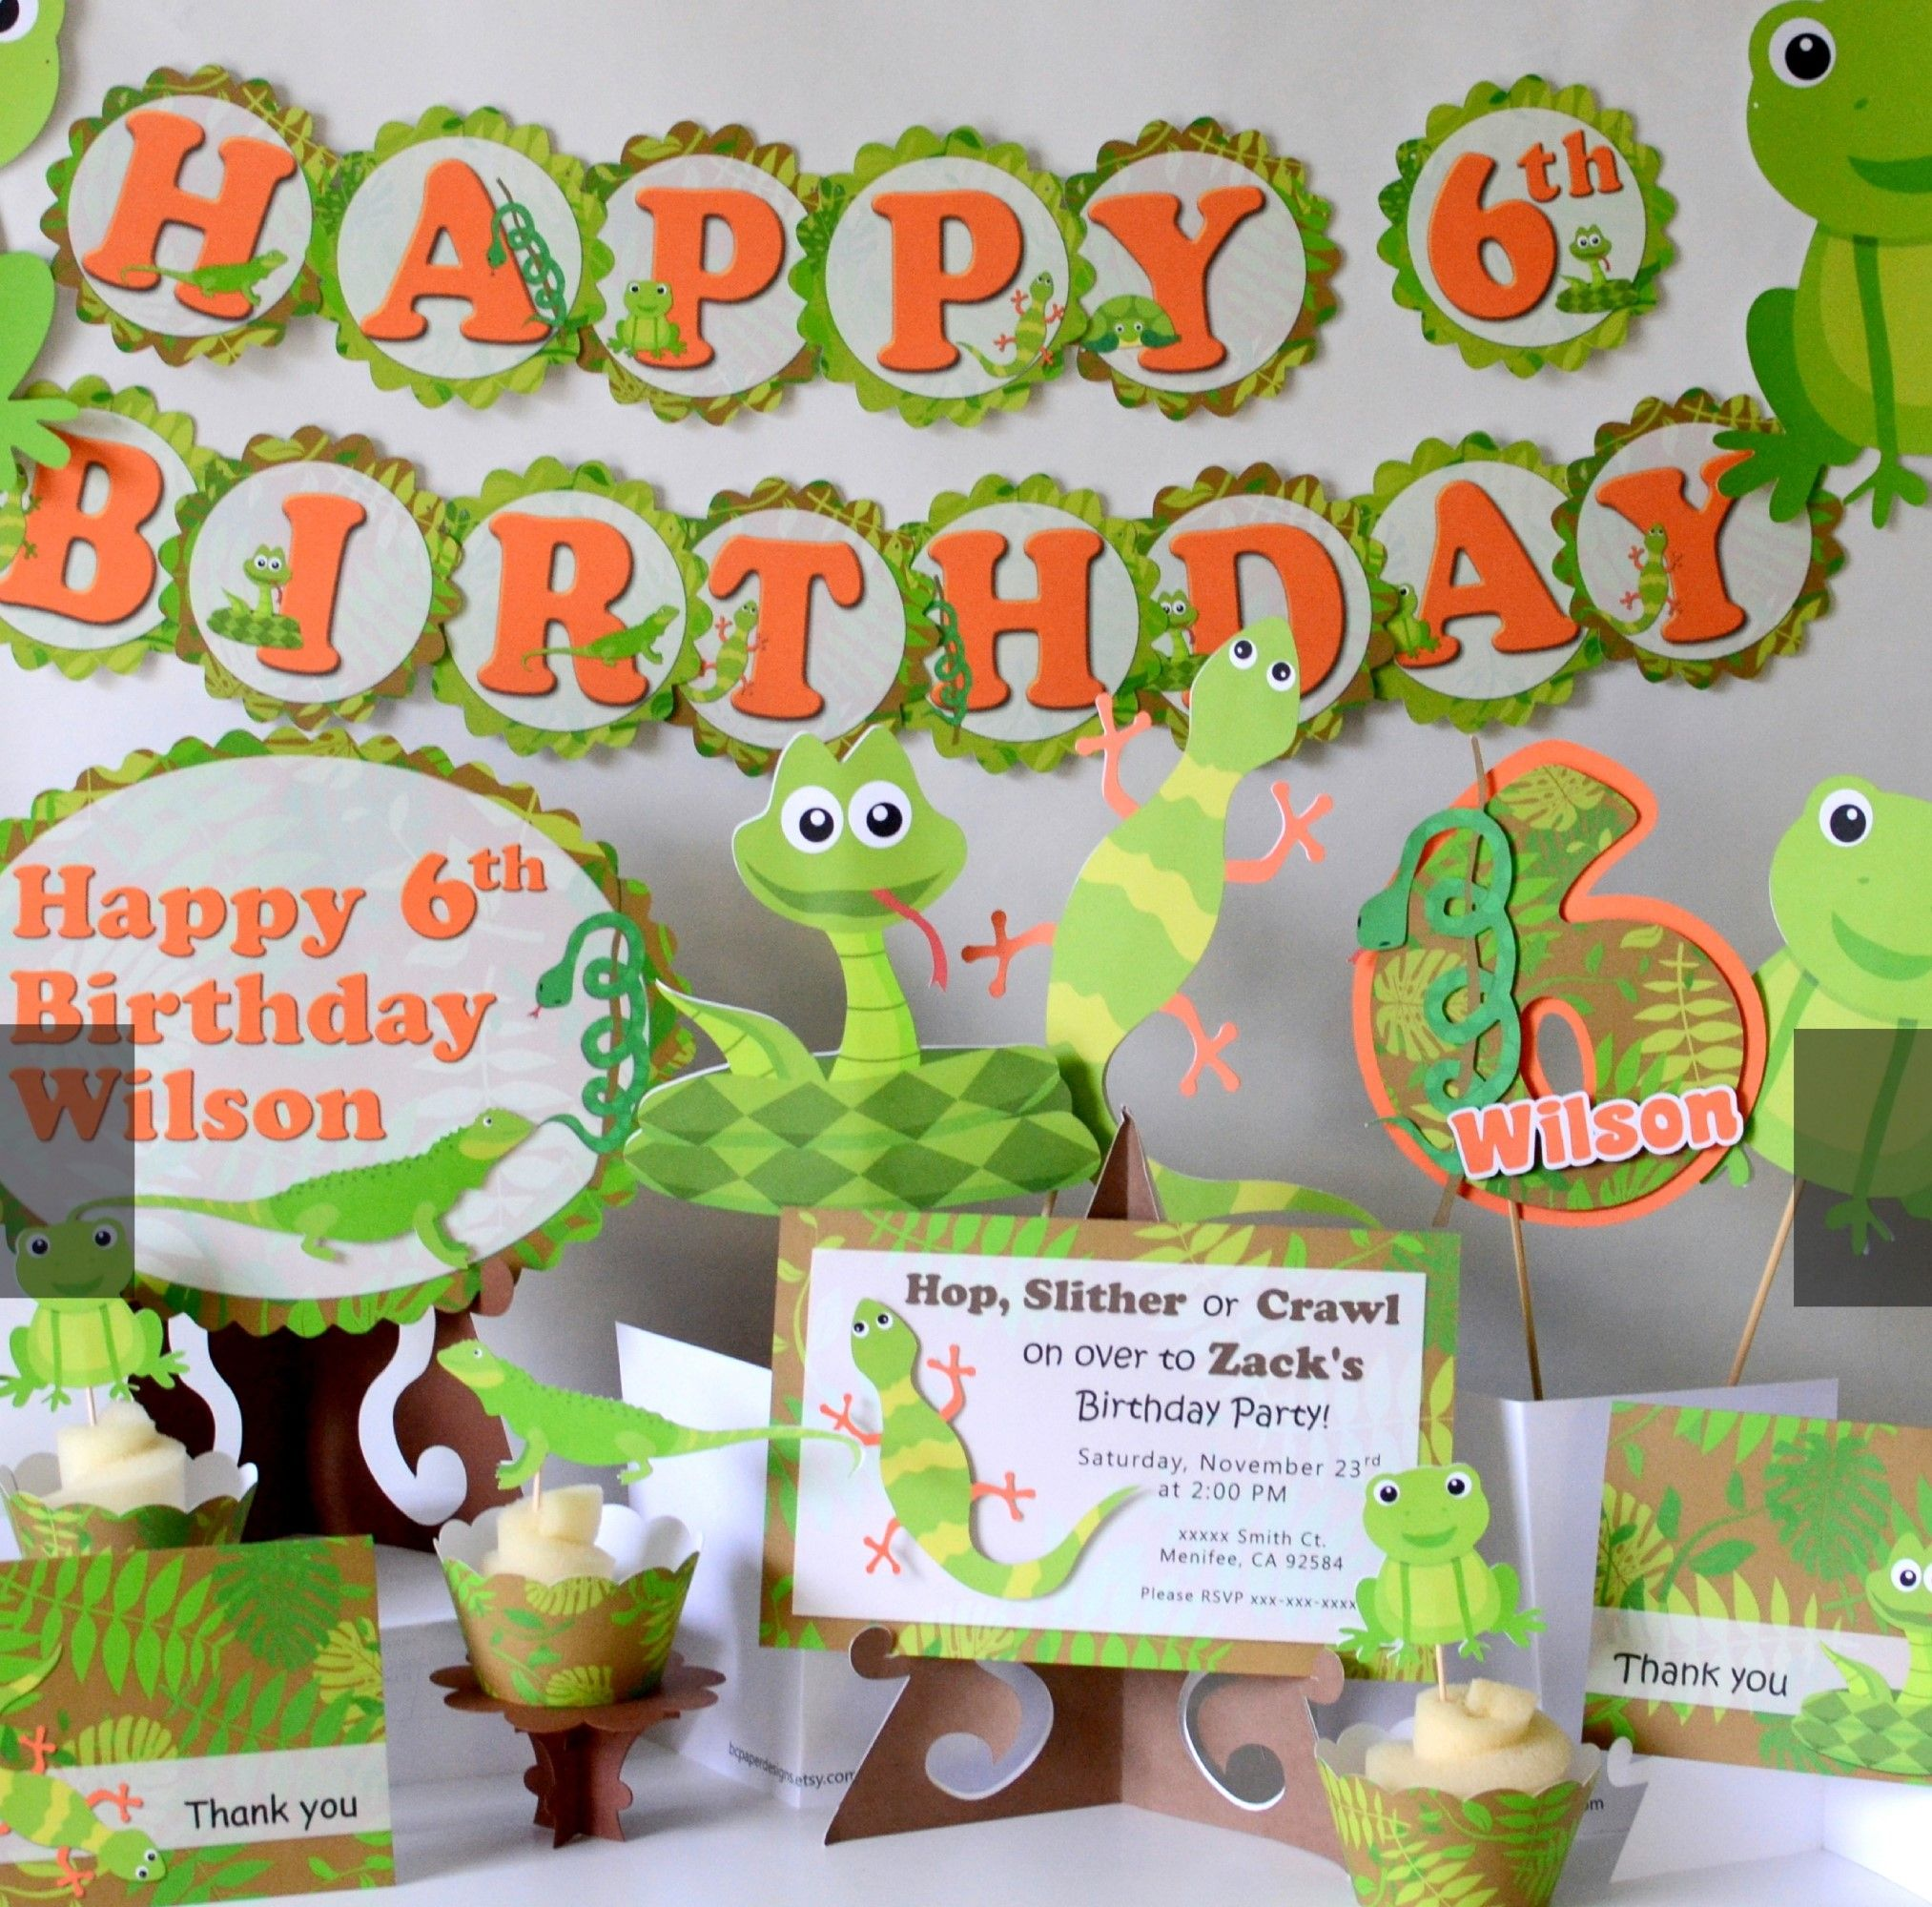 Reptile Party Birthday Decorations - Snake, Lizard, Frog ...